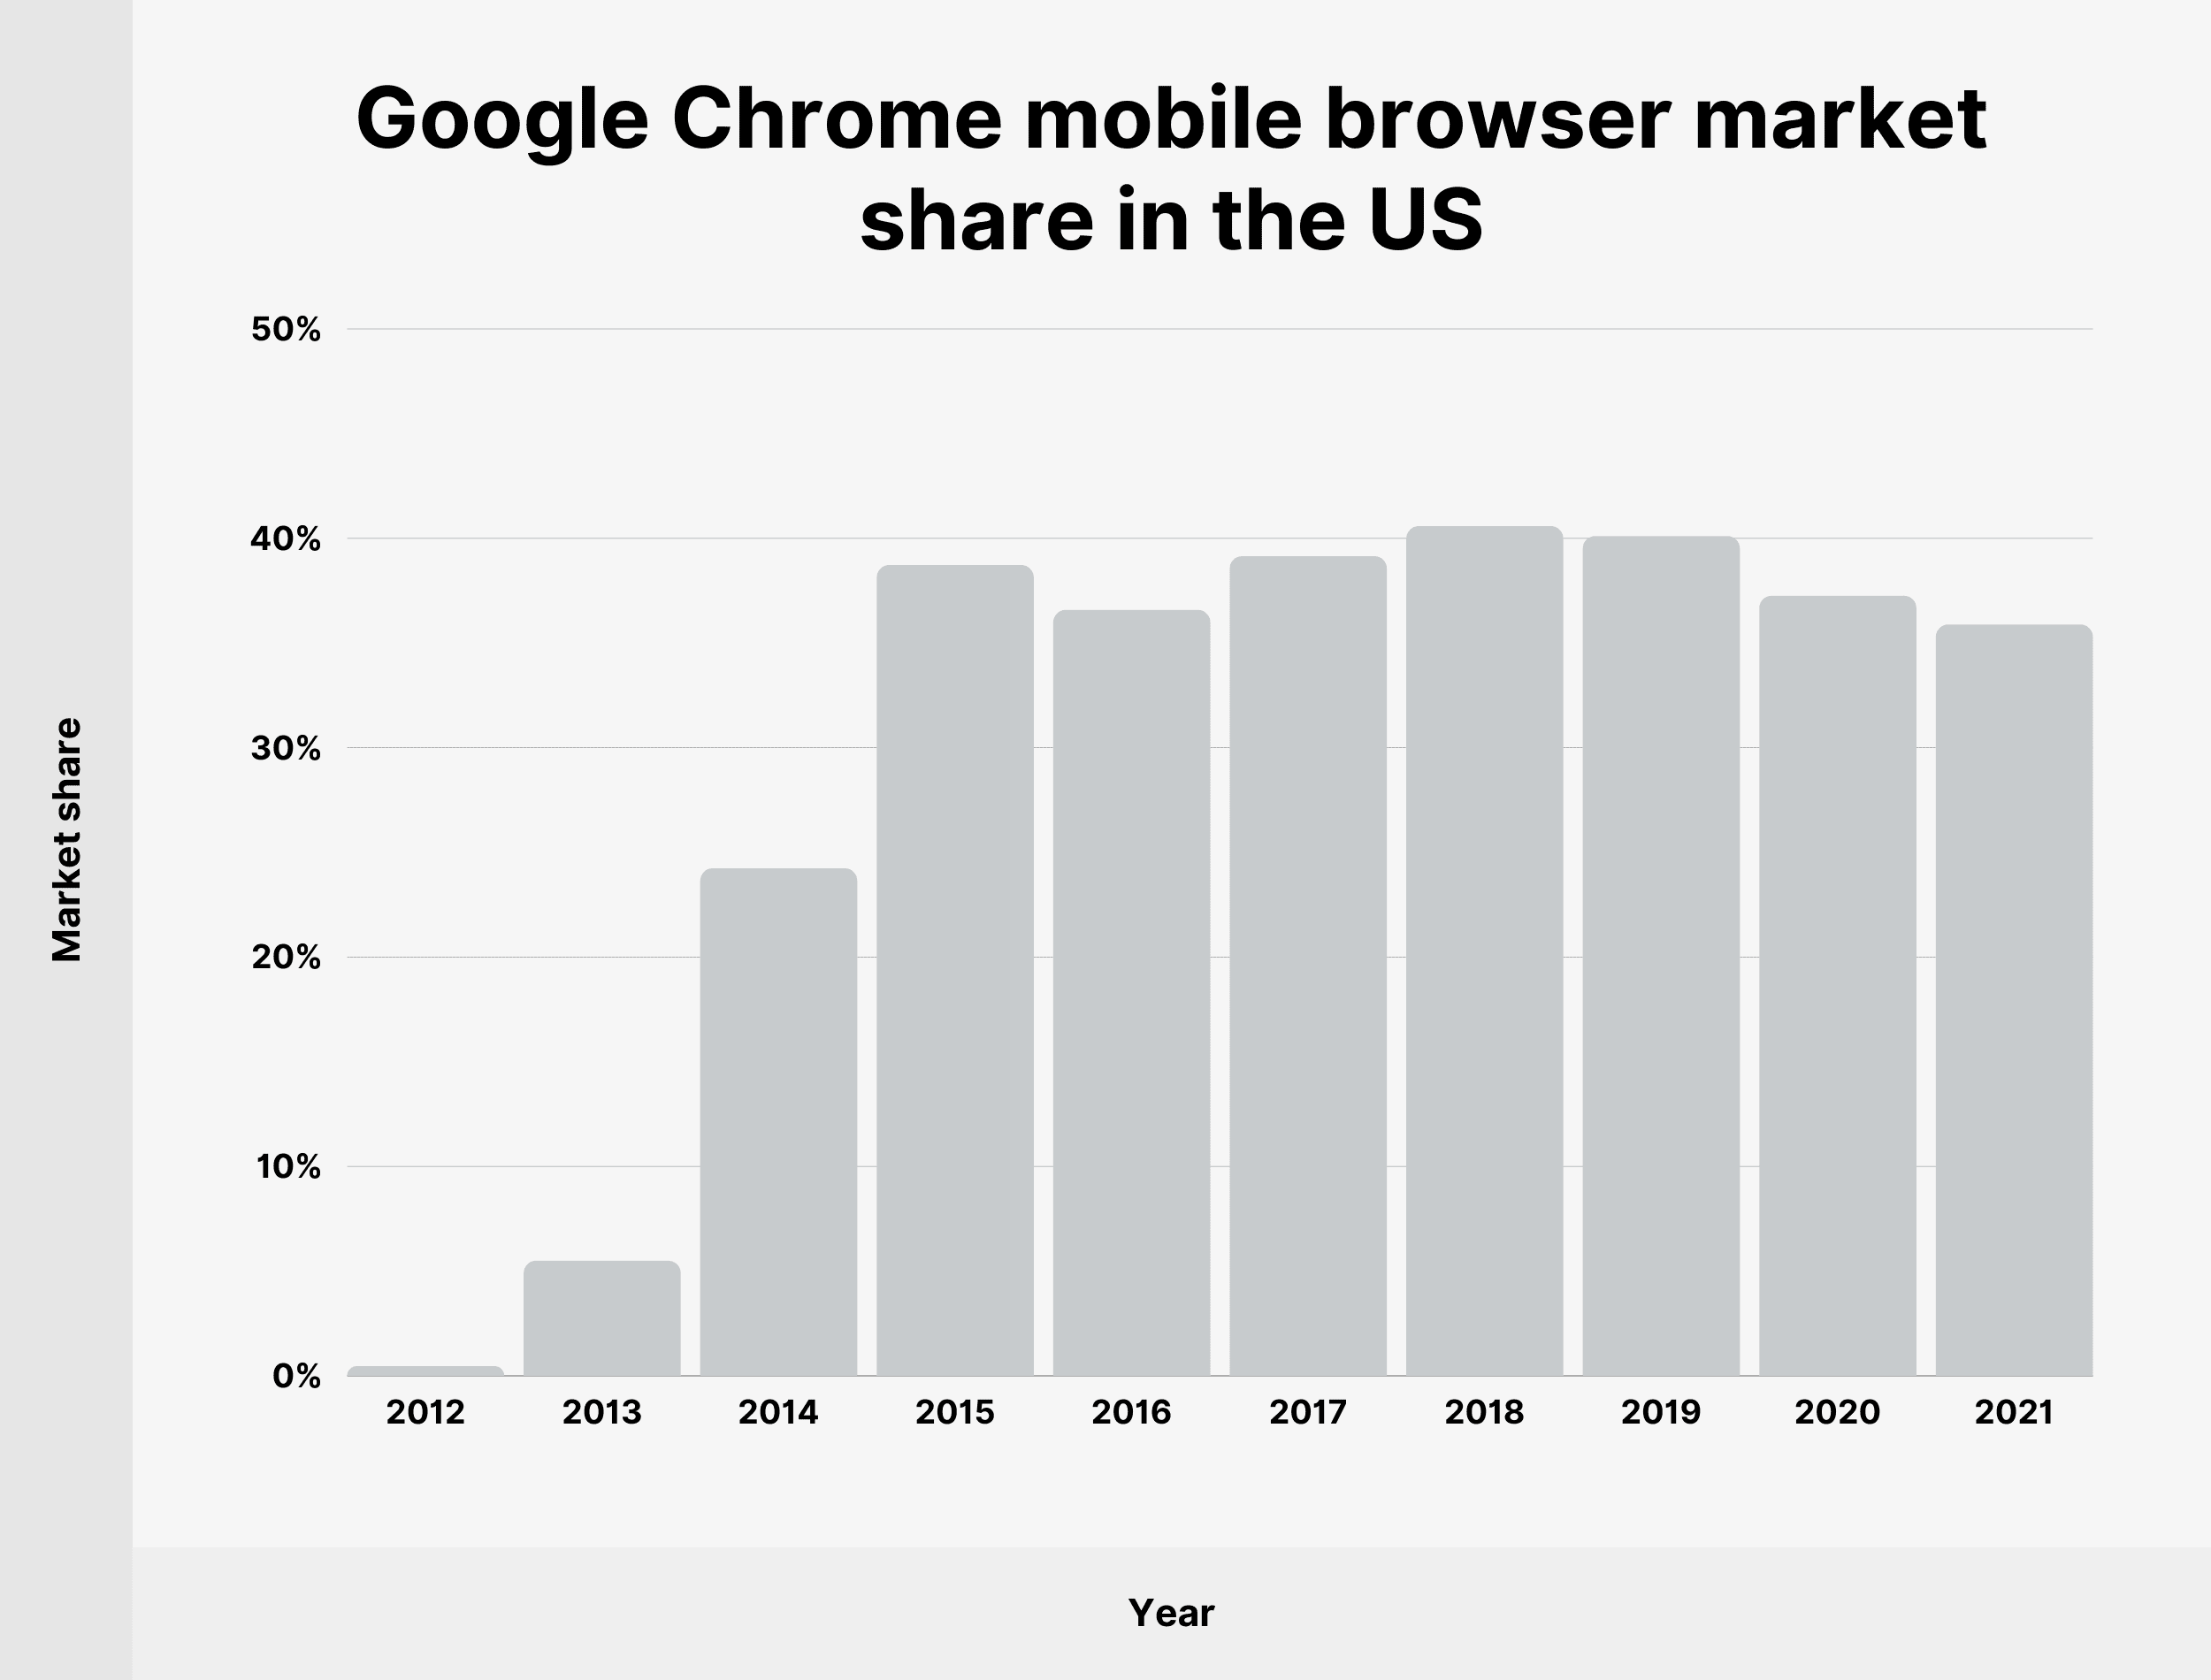 Google Chrome mobile browser market share in the US